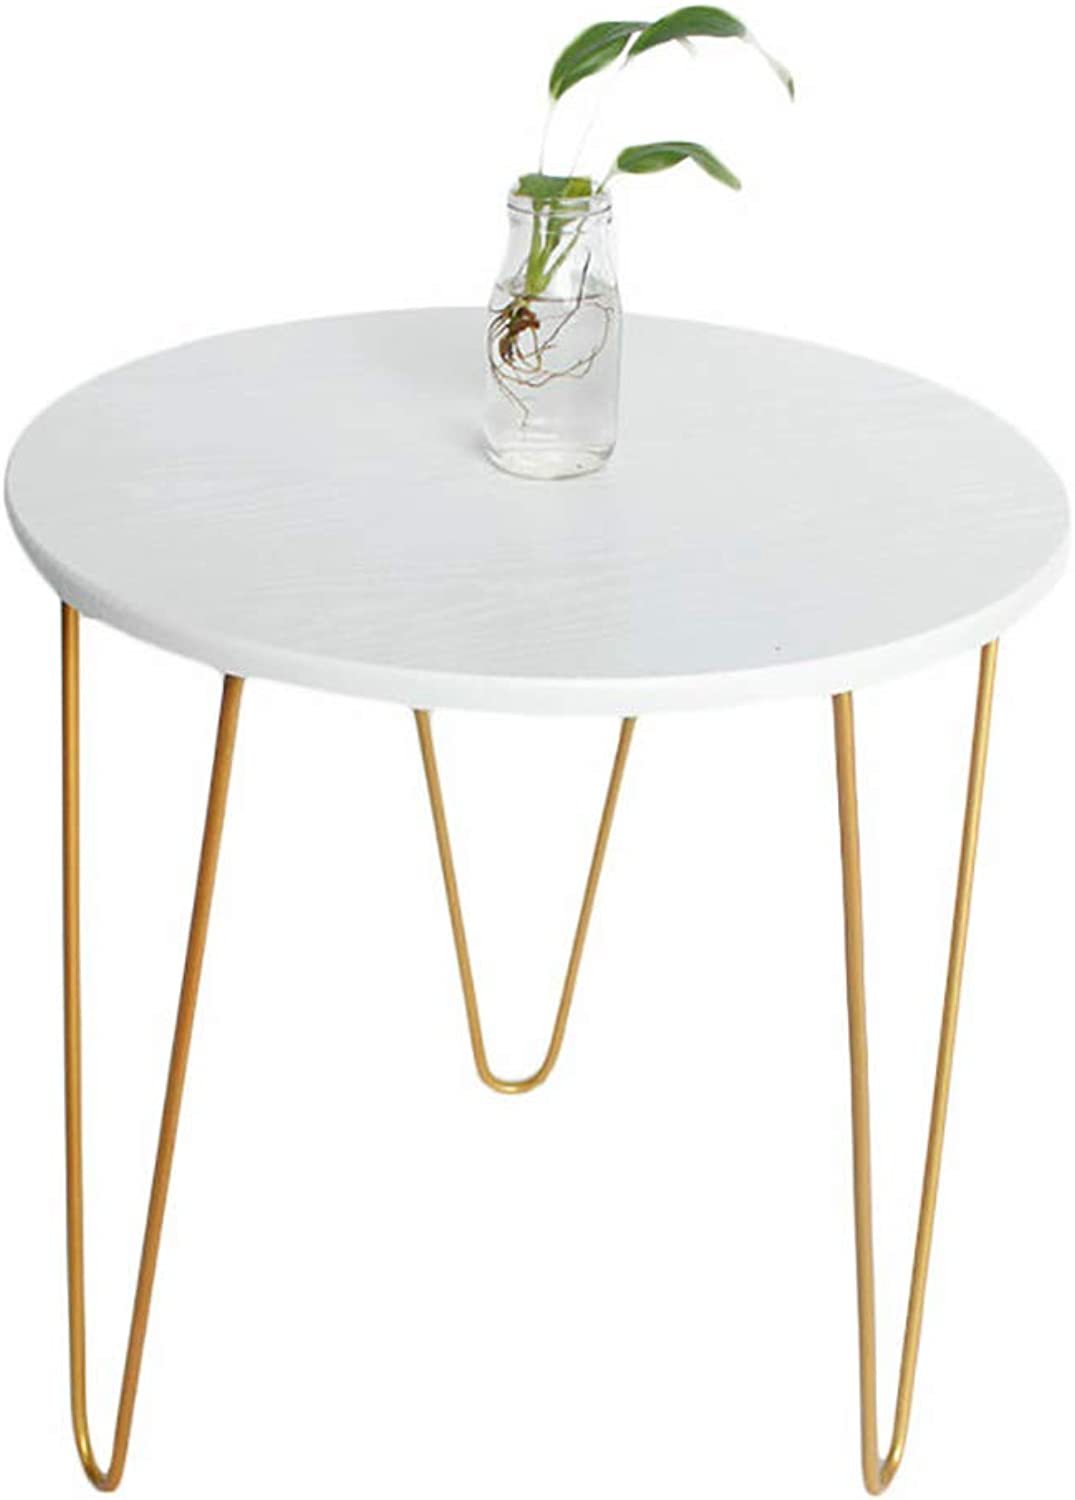 Small Round Table Coffee Table side table Modern Casual Tea Table Balcony and Living Room Dining Table Kitchen Table bar Table - White